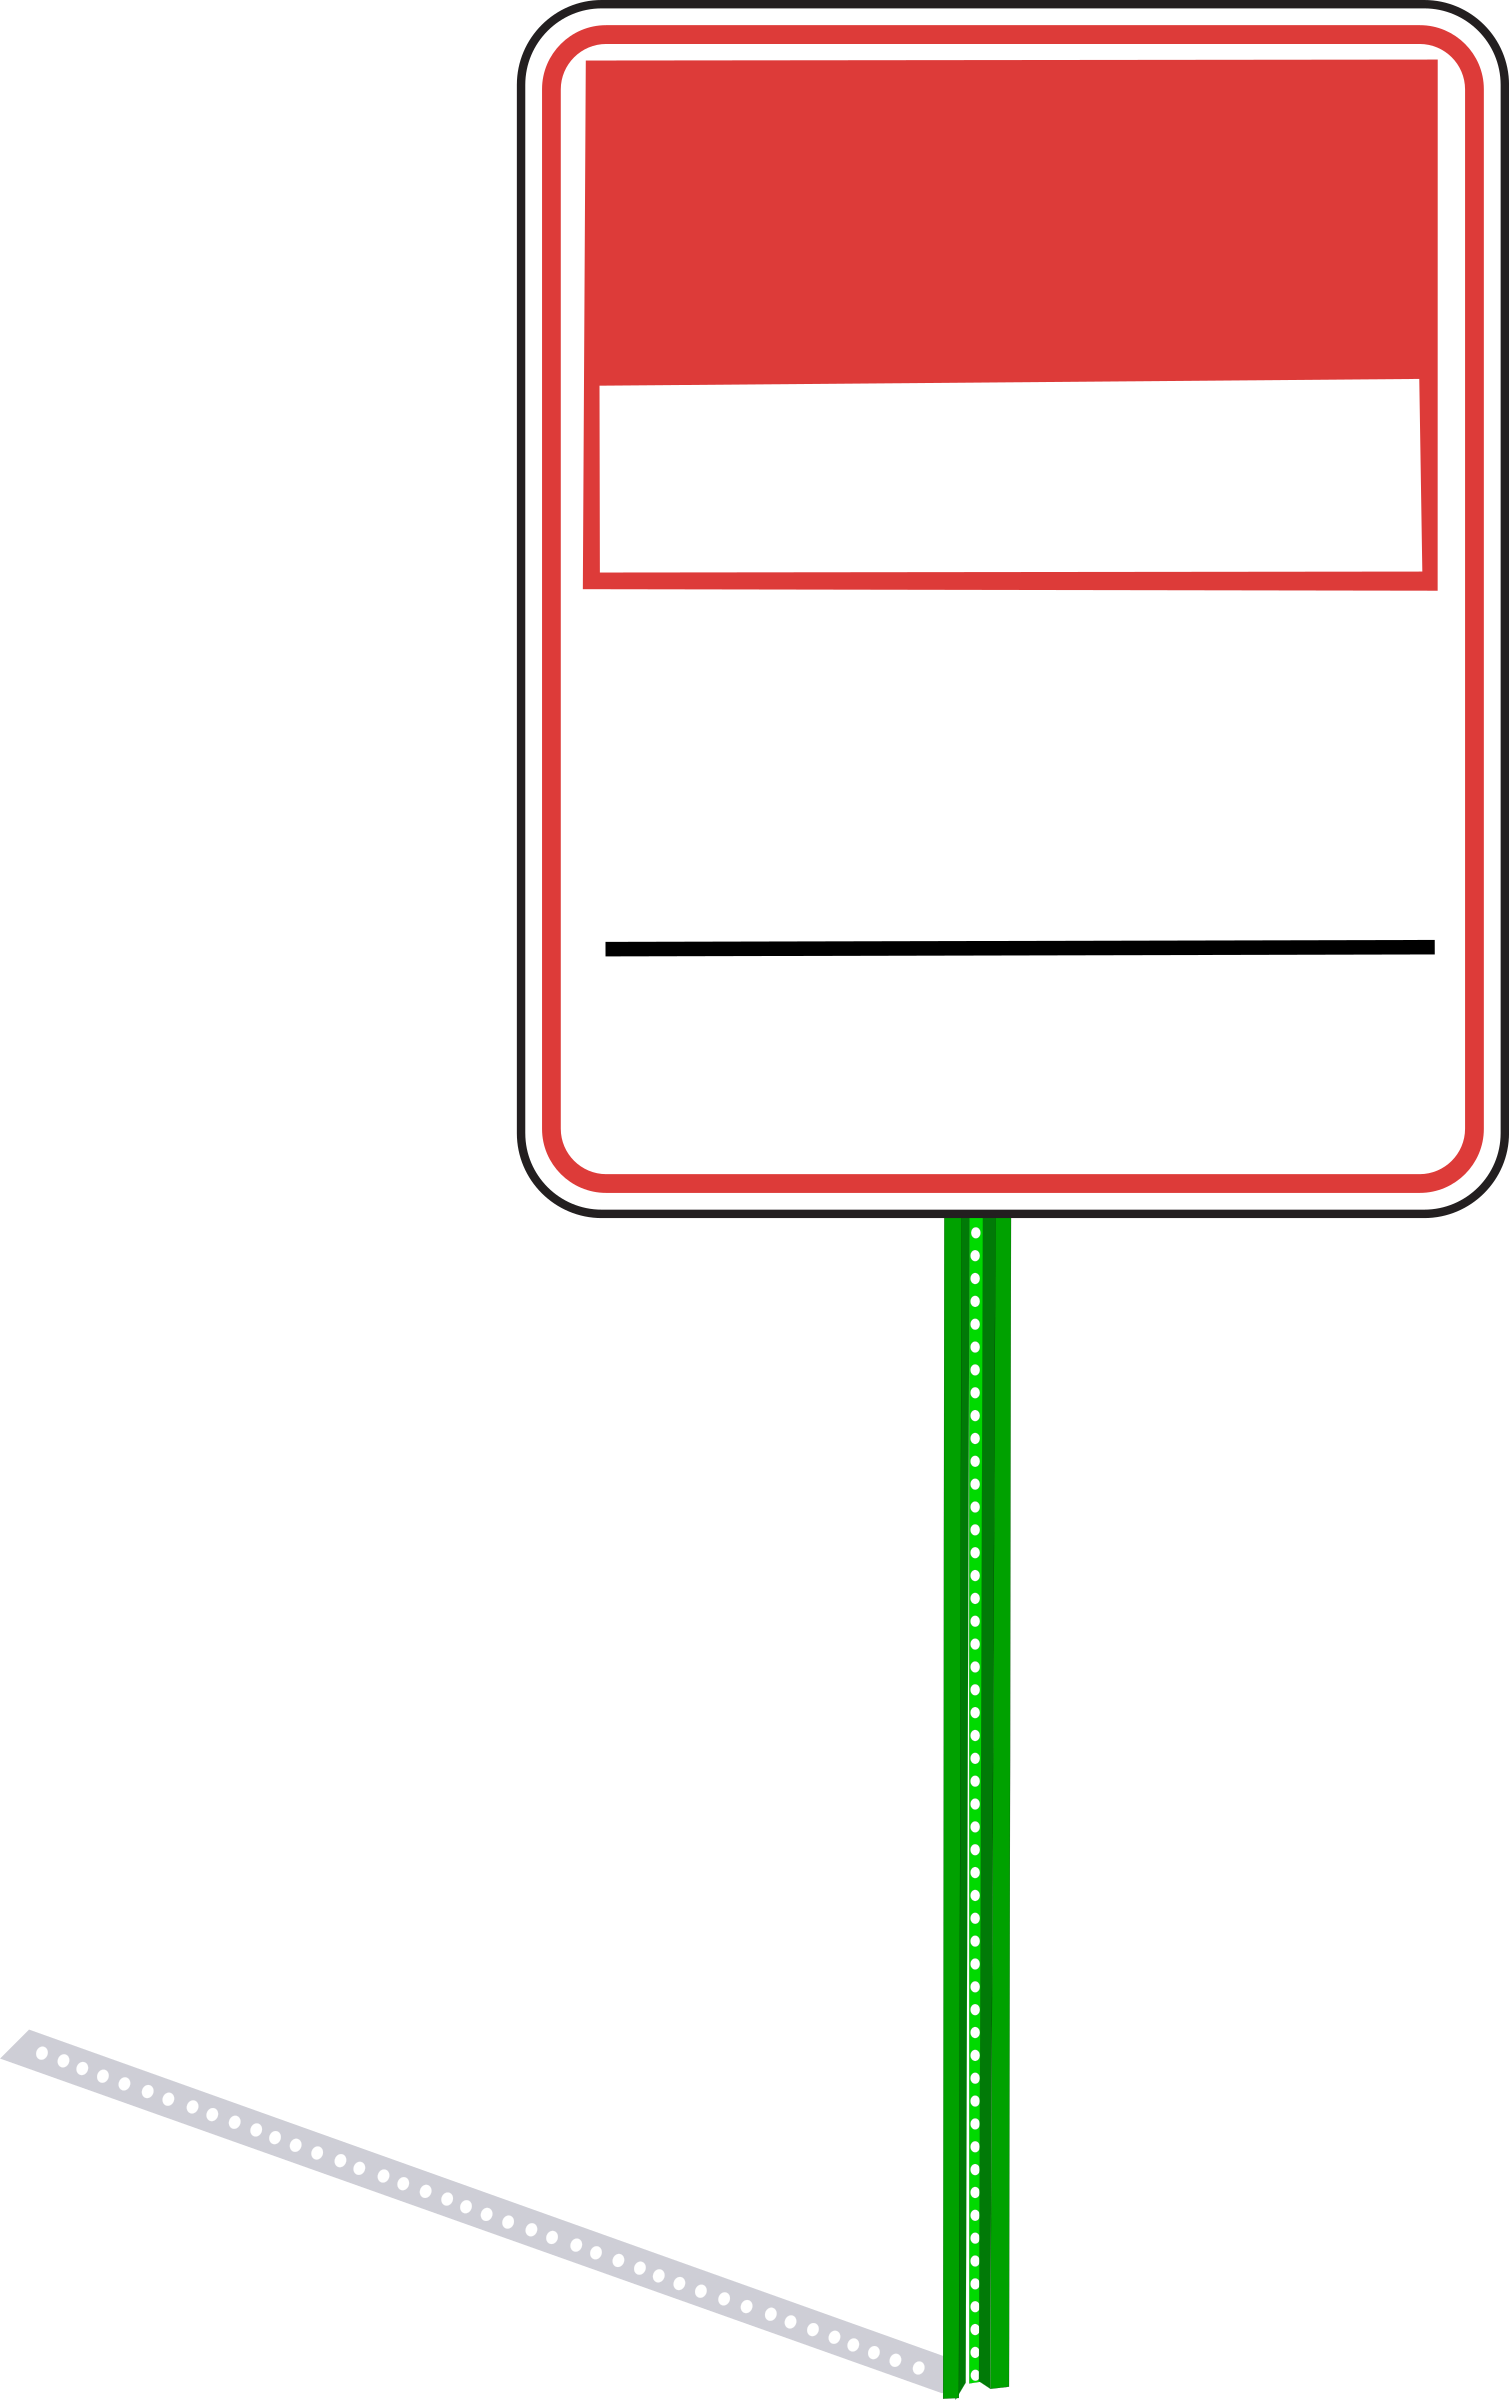 No dumping sign with signpost and shadow by Rfc1394